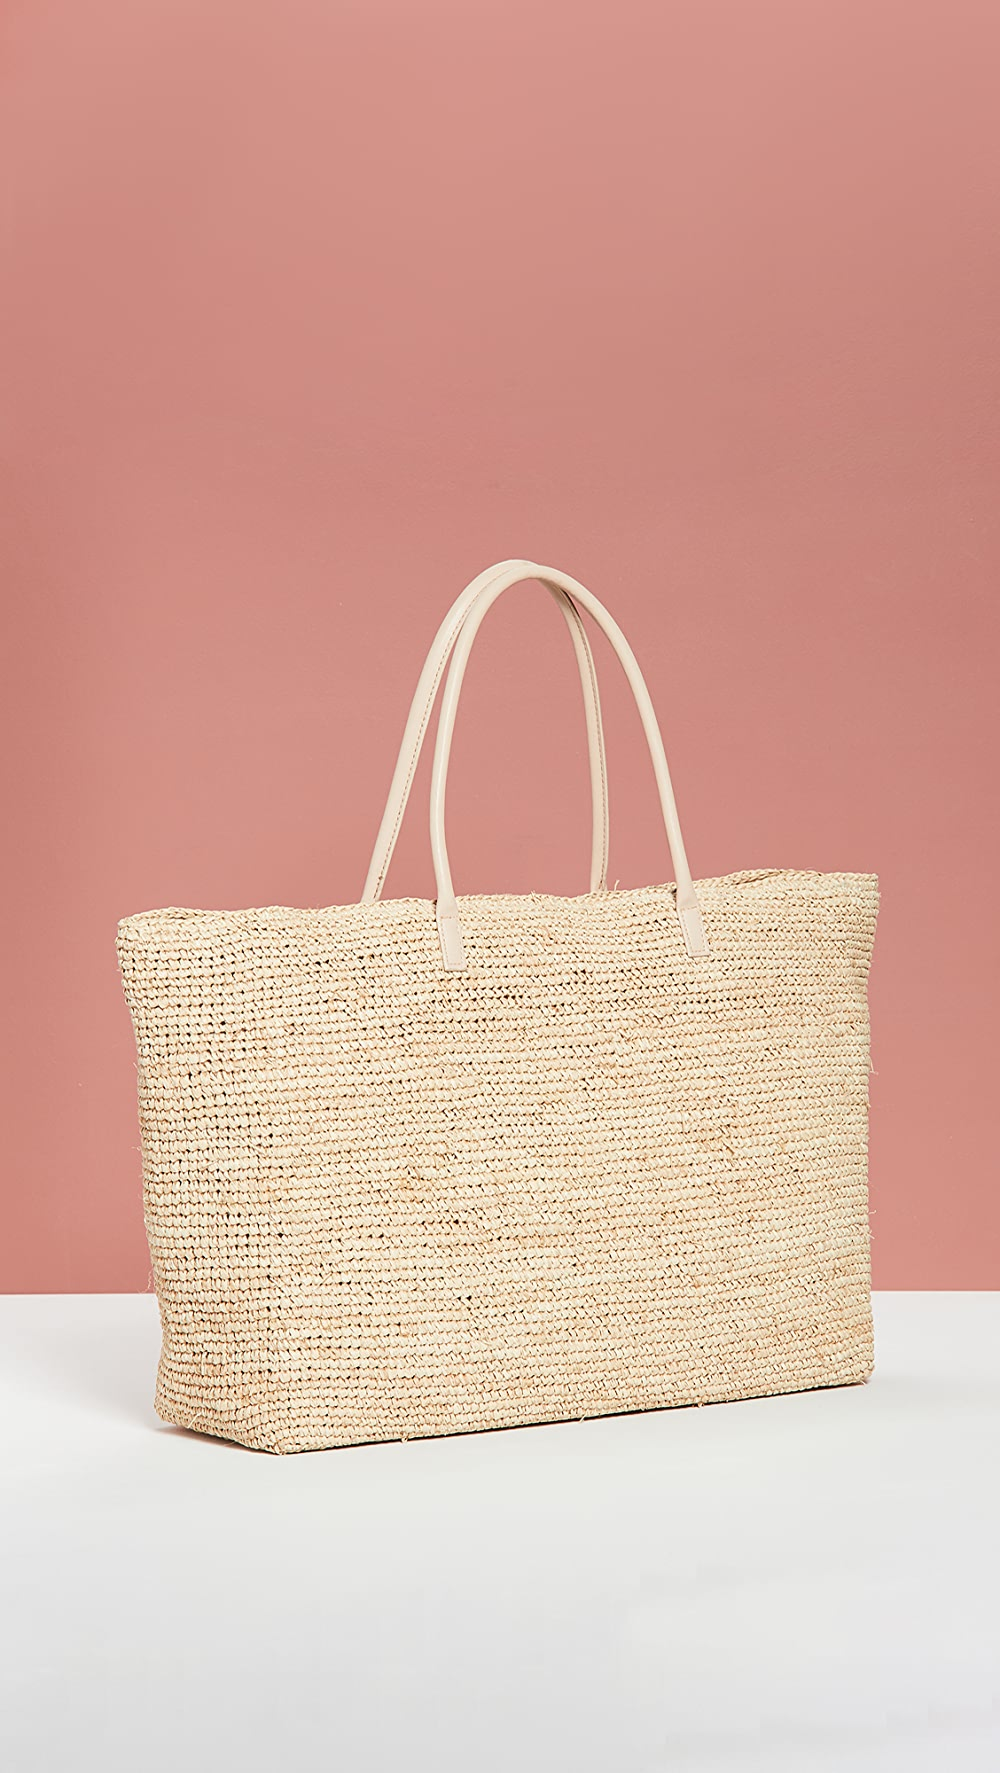 2019 New Style Hat Attack - Chic Tote Spare No Cost At Any Cost